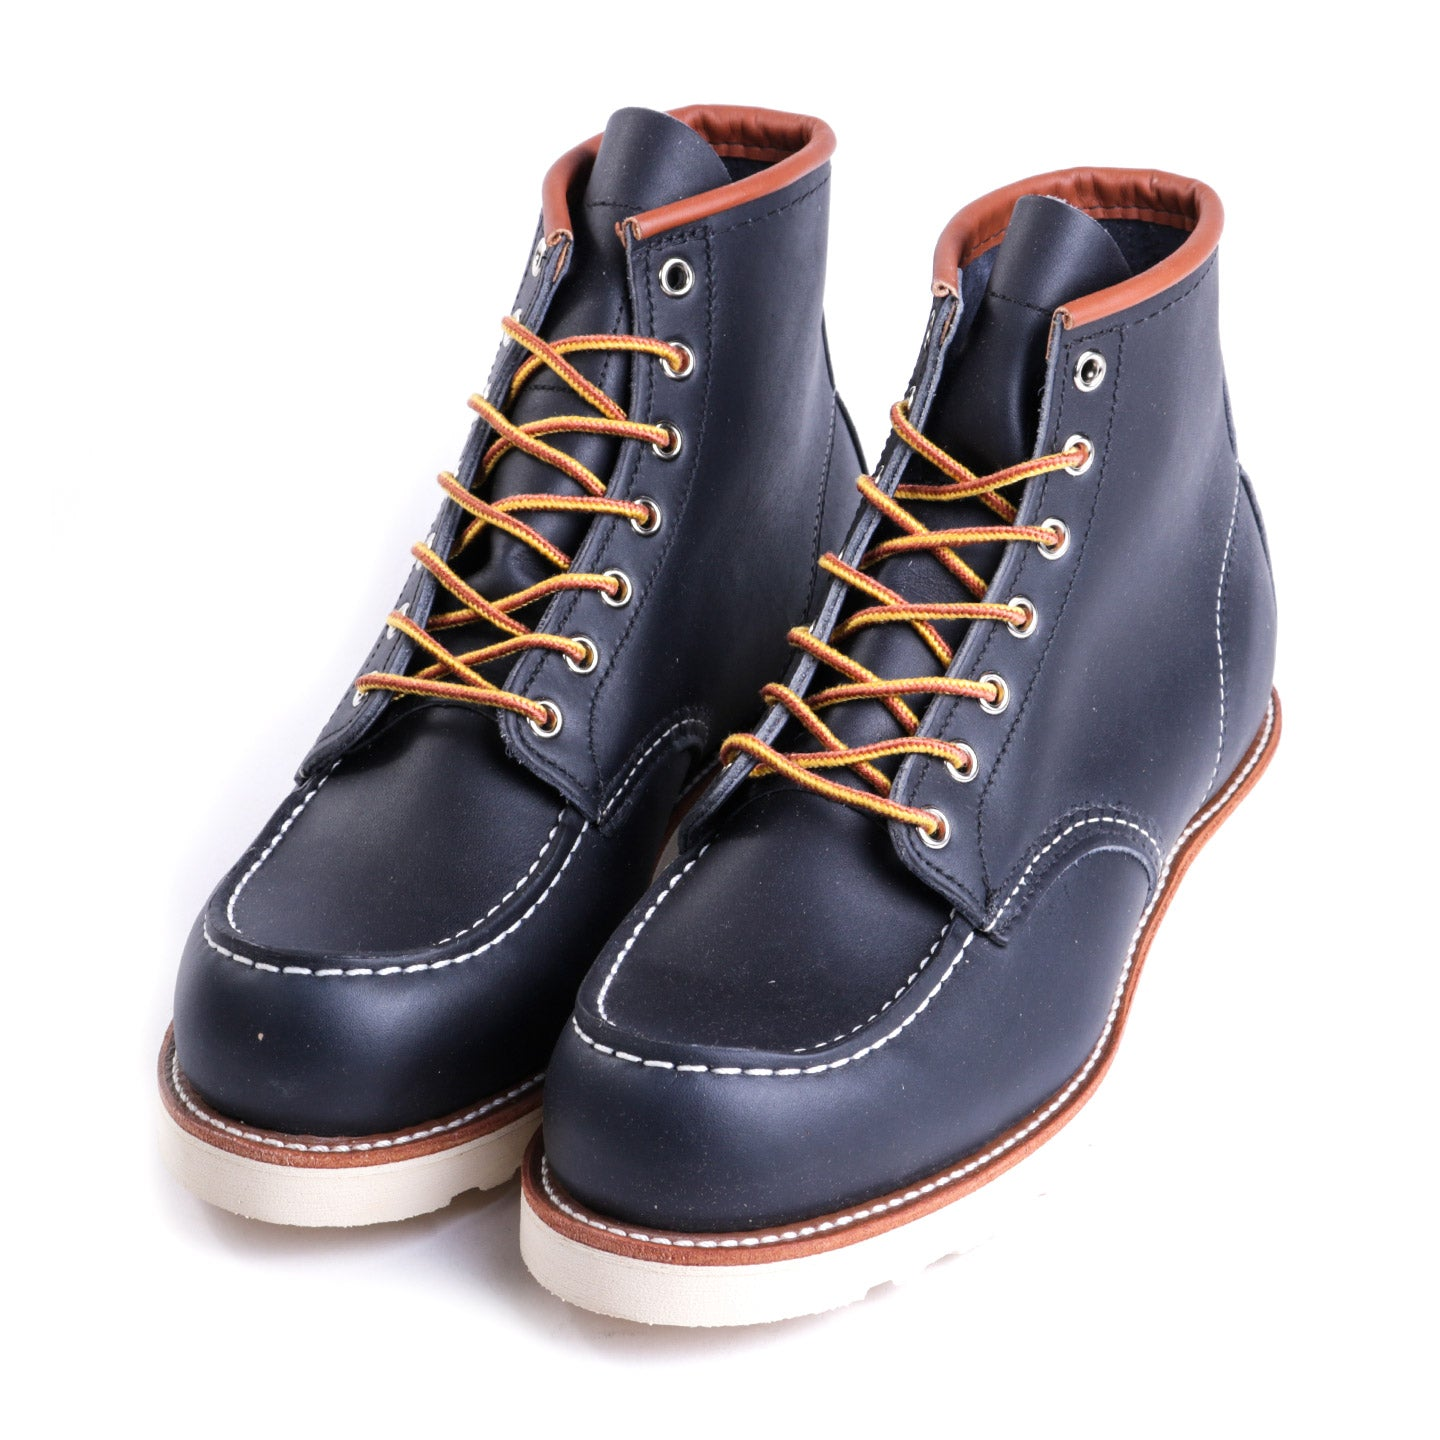 "RED WING 8859 6"" CLASSIC MOC NAVY"